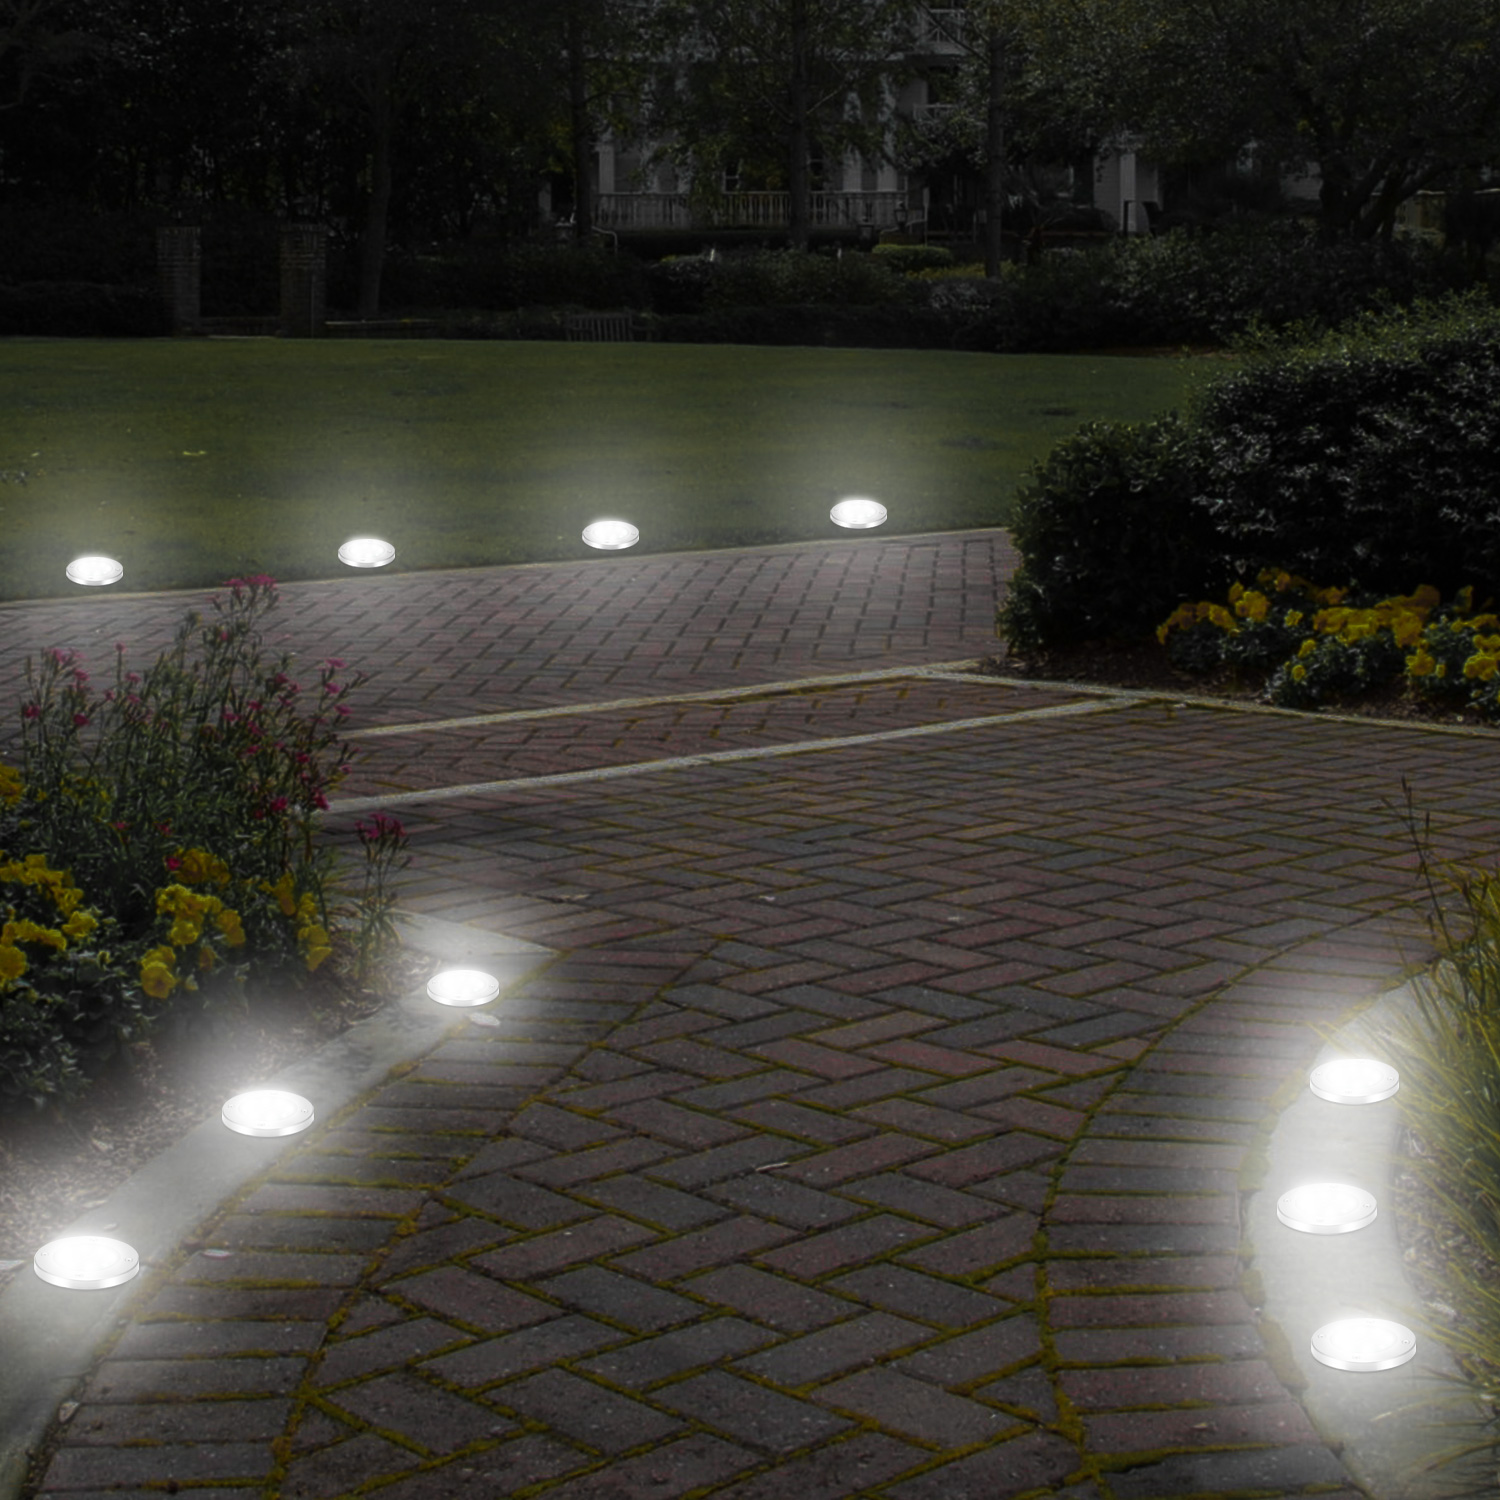 Us 16 44 35 Off 4pcs Waterproof Led Solar Lawn Lights 8 Leds Outdoor Ed Buried Ground Light Garden Decor Path Lamp In